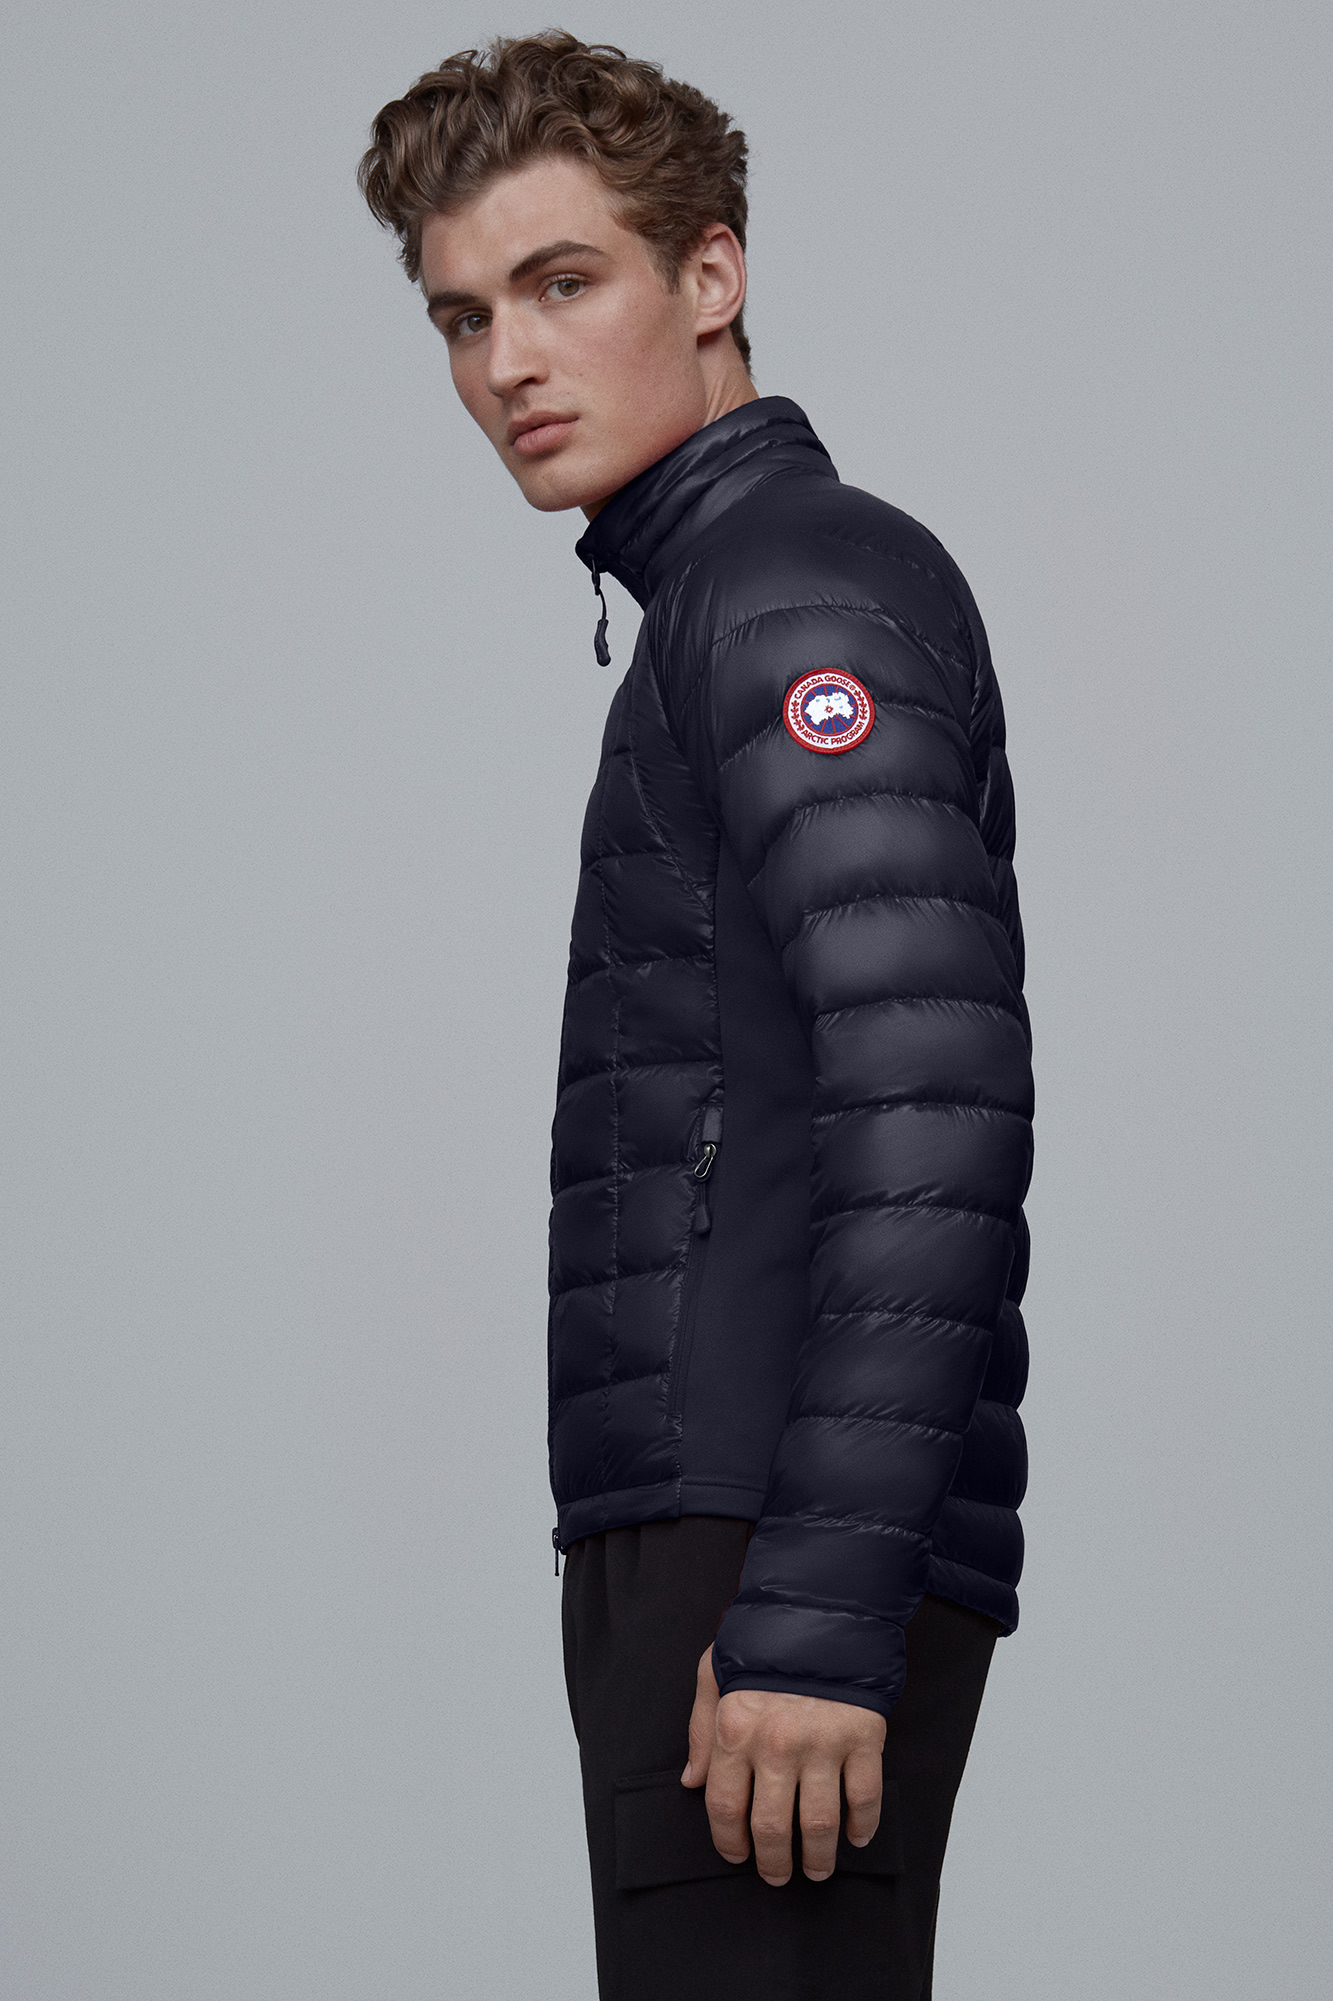 HyBridge Lite Jacket | Men | Canada Goose® - photo#3